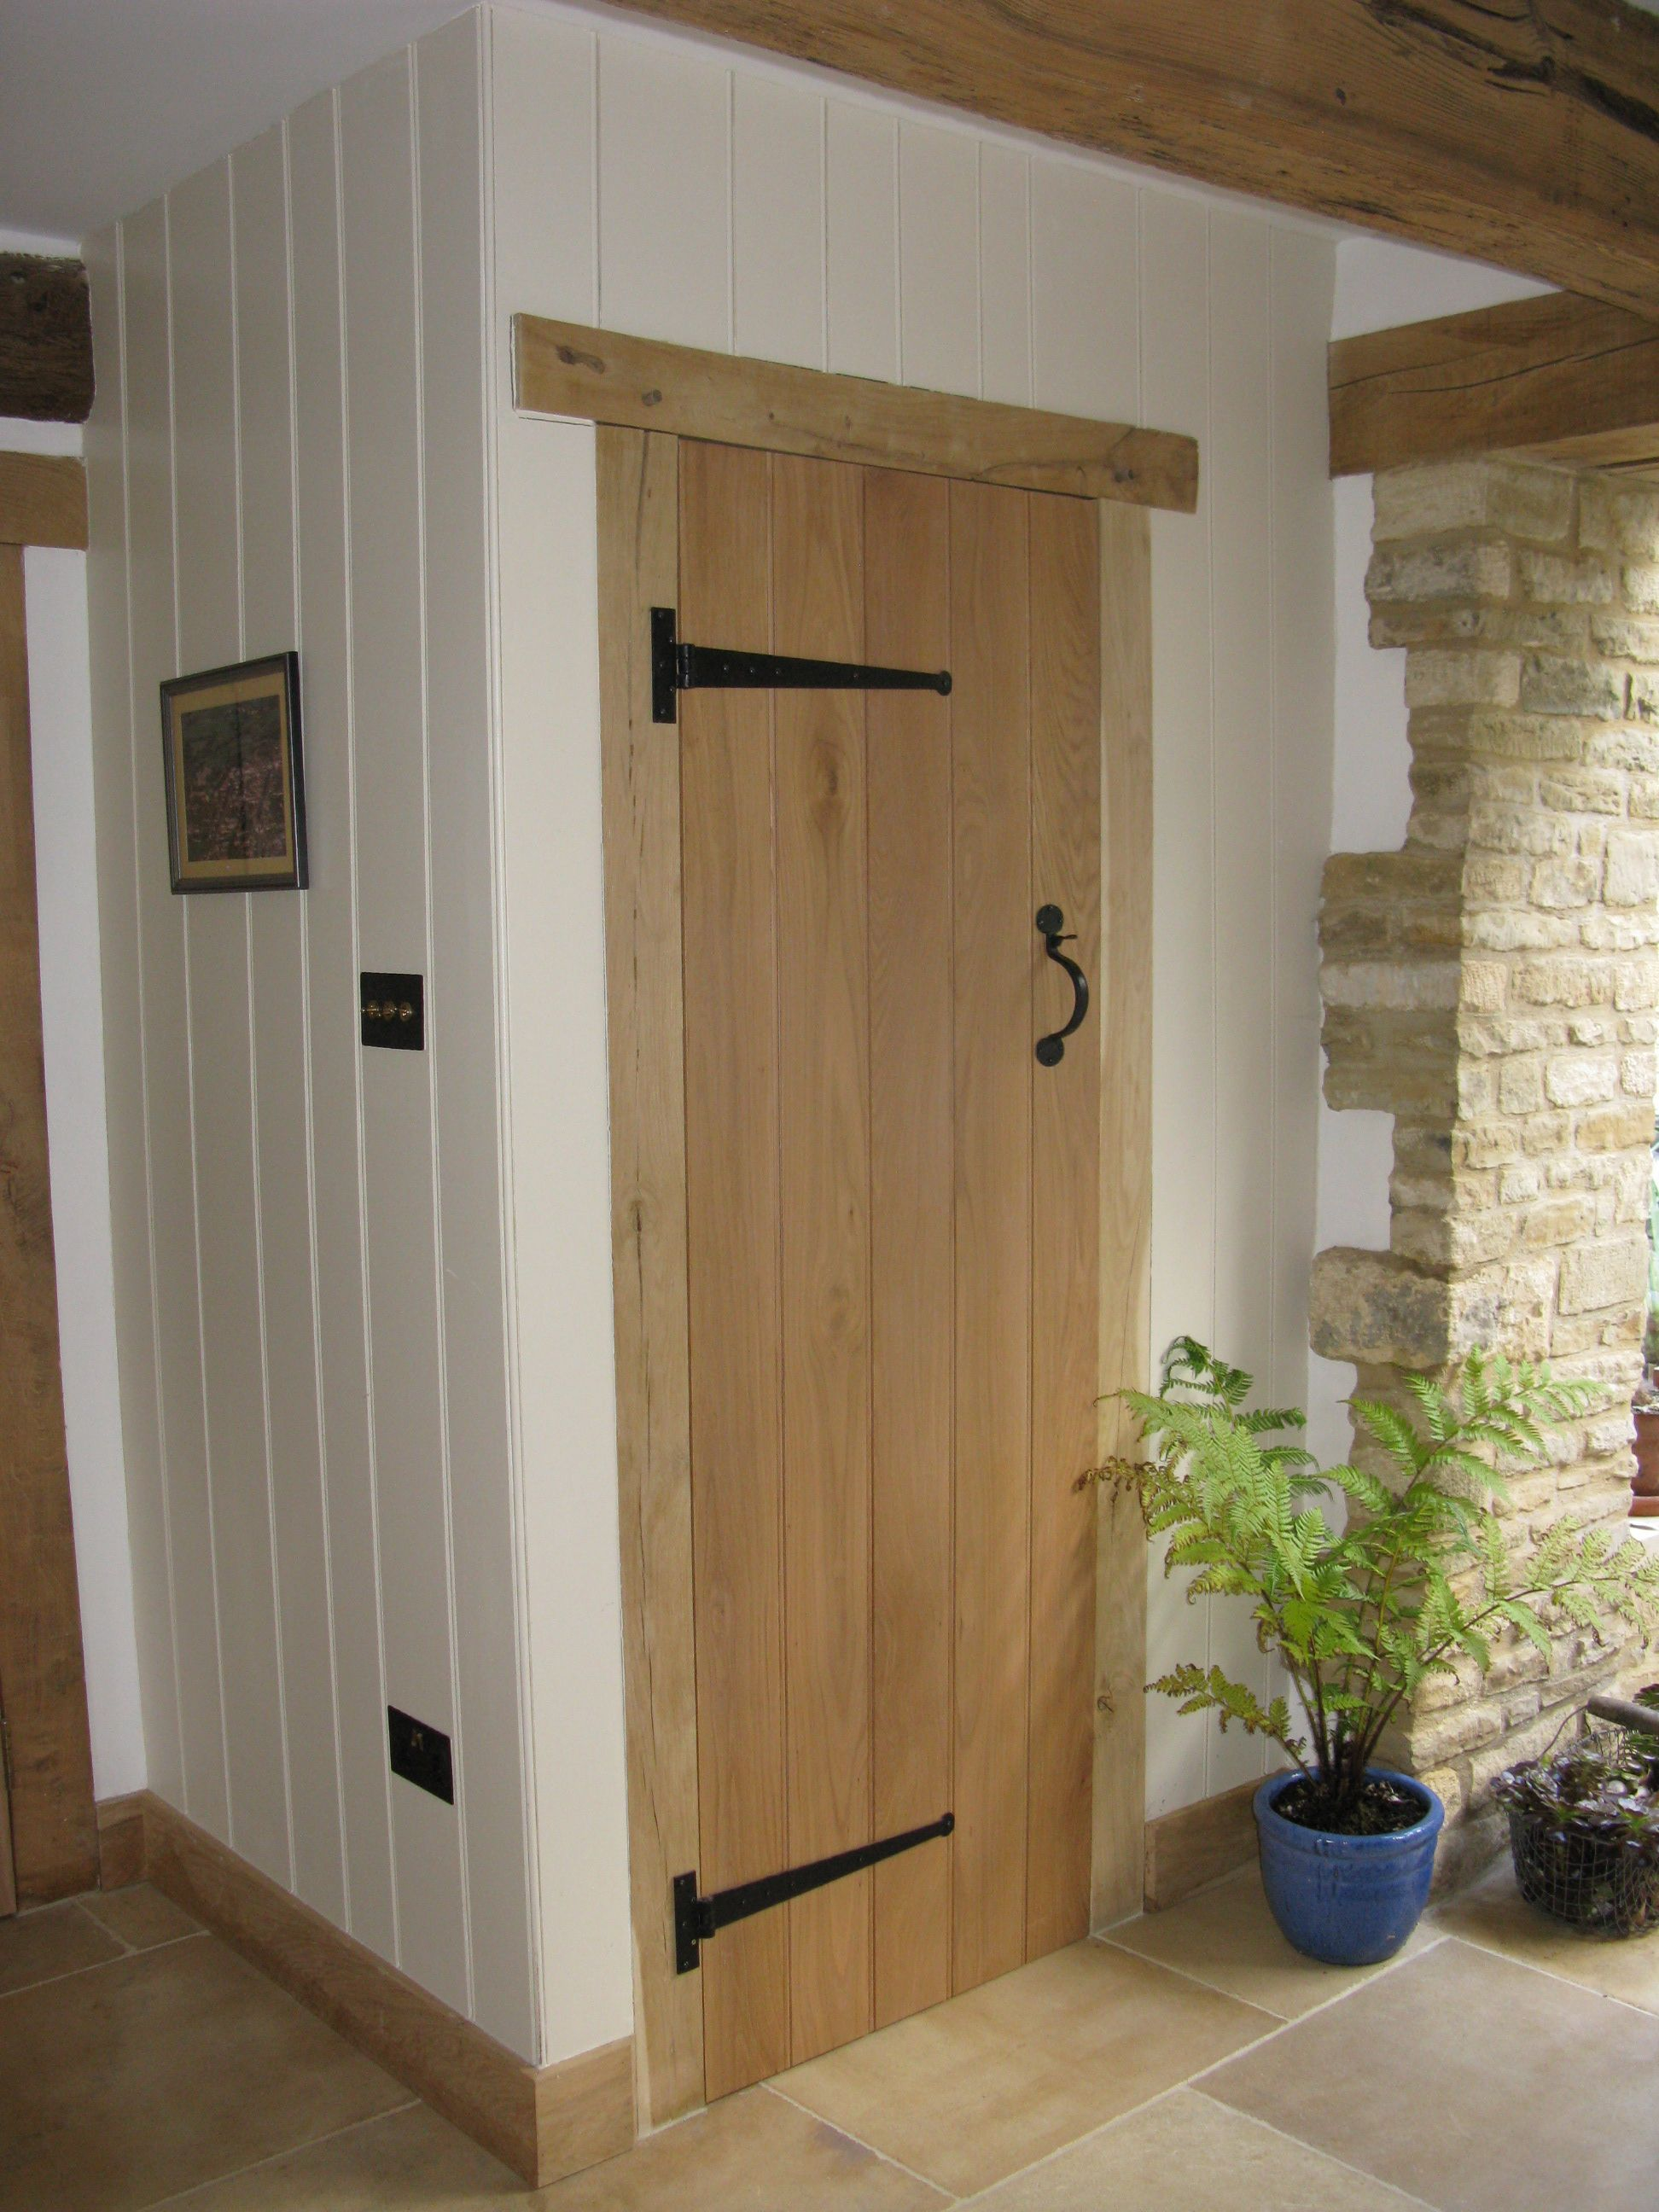 Ledge u0026 Brace Oak Door. Ledge and Brace Solid Oak Door. Wooden Ledged Door. : ledged doors - pezcame.com